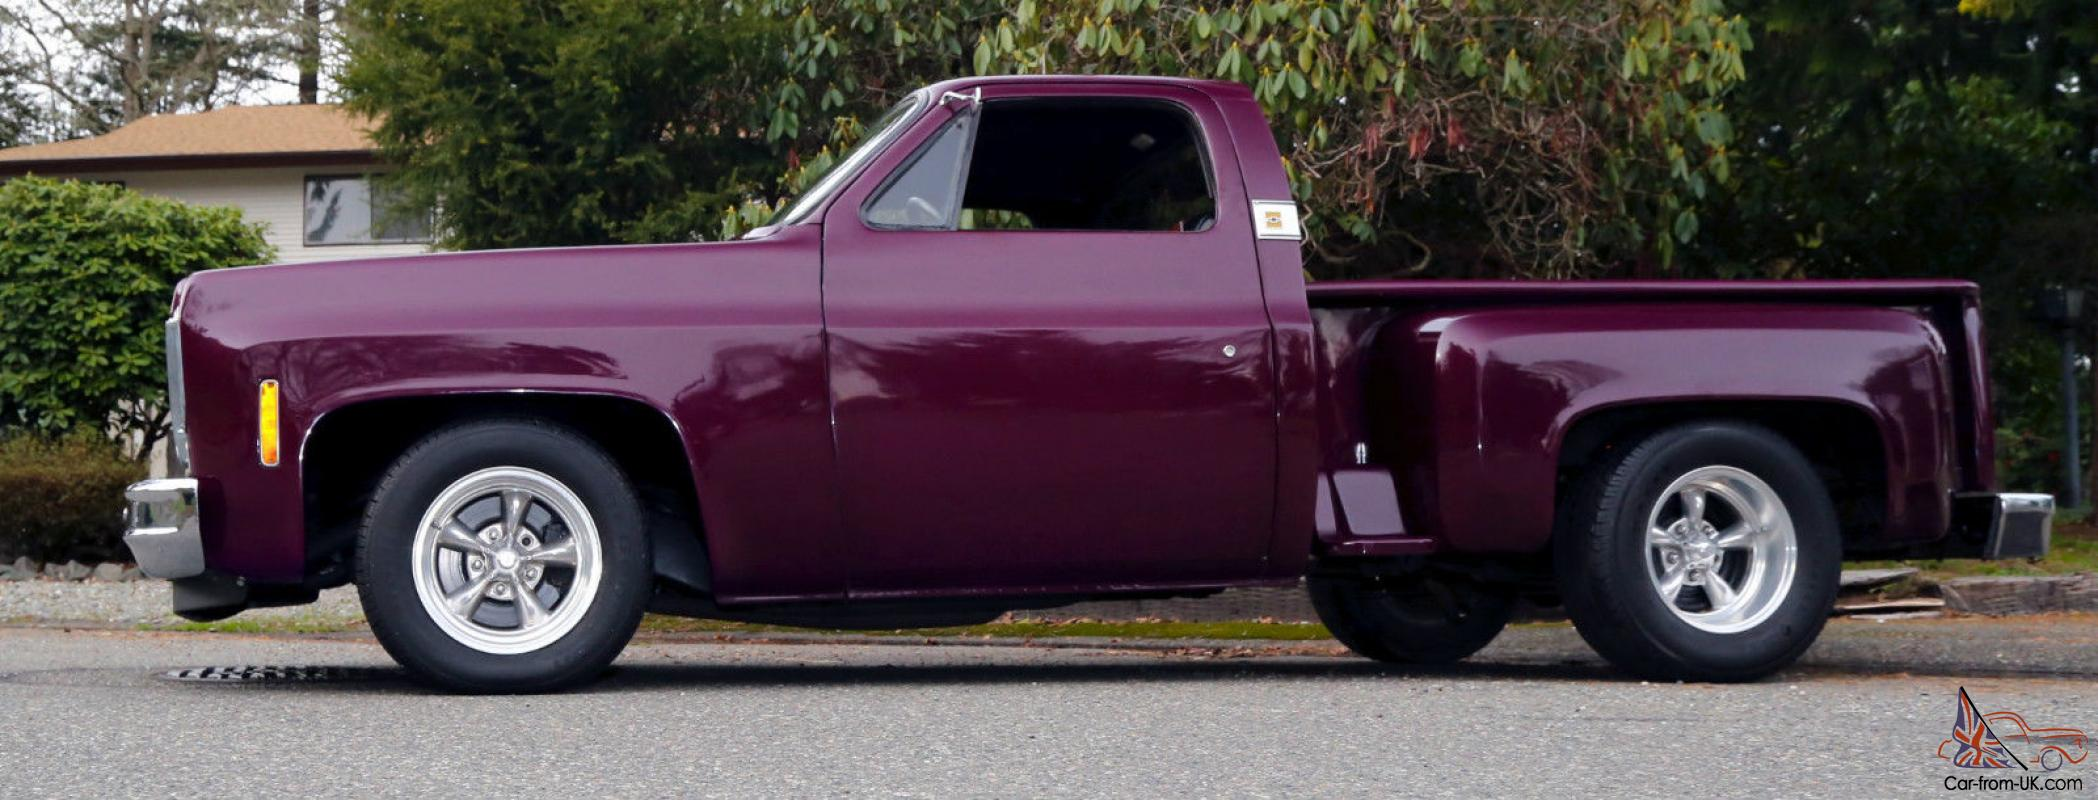 Truck 90s chevy trucks for sale : Stepside Custom CHOP TOP Low Rider Shortbox Pickup X-Show Truck ...